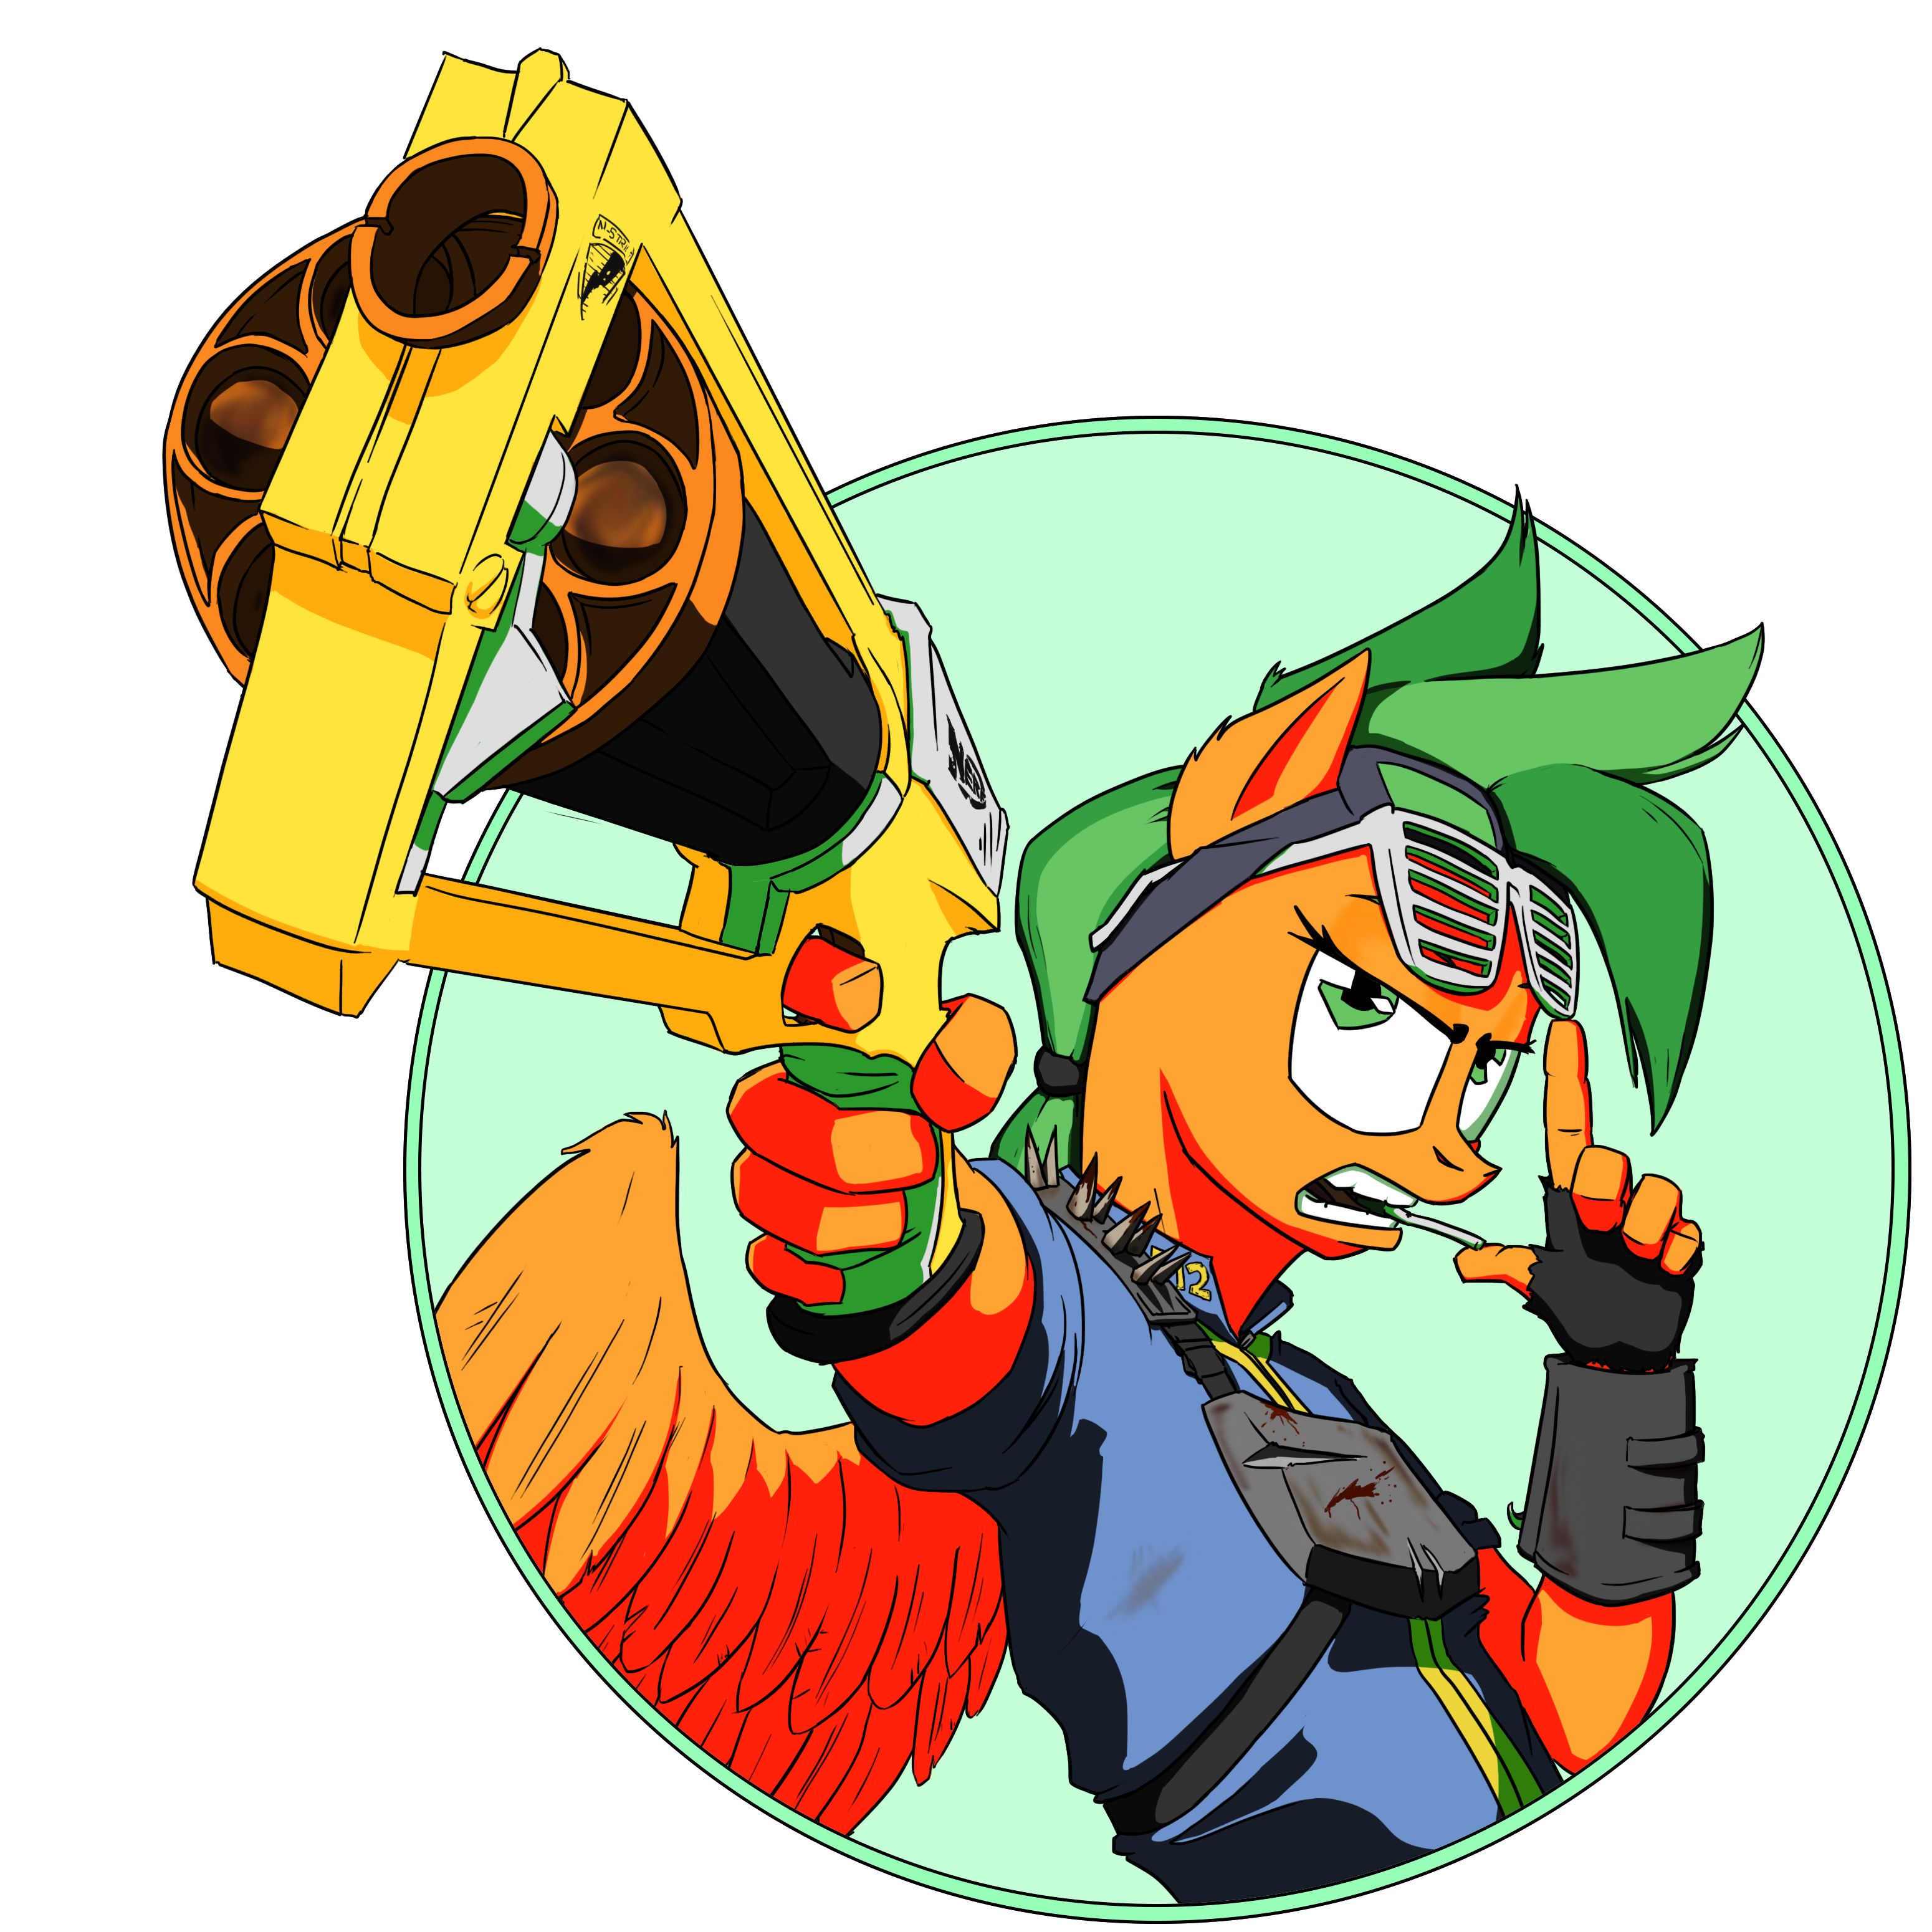 It s Nerf Nothing by CaptainHoers It s Nerf Nothing by CaptainHoers